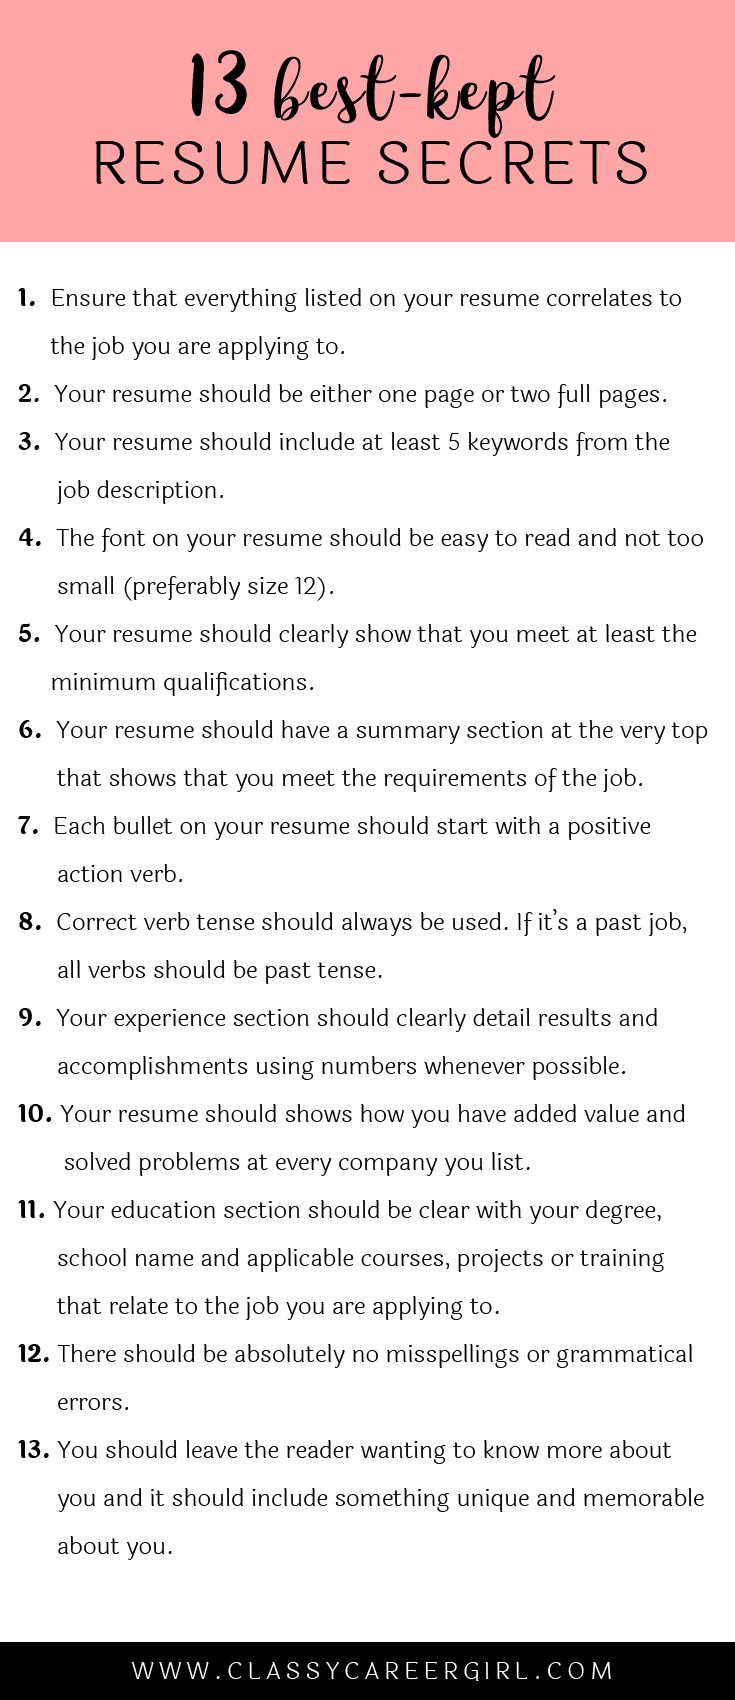 Opposenewapstandardsus  Inspiring  Ideas About Resume On Pinterest  Cv Format Resume Cv And  With Fetching Some Hiring Managers Will Toss Your Resume Out If You Dont Know These  With Delightful Executive Resume Templates Word Also Skills Based Resume Sample In Addition Text Resume Sample And How To Write A Good Resume For A Job As Well As Warehouse Manager Resume Sample Additionally How To Make A Strong Resume From Pinterestcom With Opposenewapstandardsus  Fetching  Ideas About Resume On Pinterest  Cv Format Resume Cv And  With Delightful Some Hiring Managers Will Toss Your Resume Out If You Dont Know These  And Inspiring Executive Resume Templates Word Also Skills Based Resume Sample In Addition Text Resume Sample From Pinterestcom